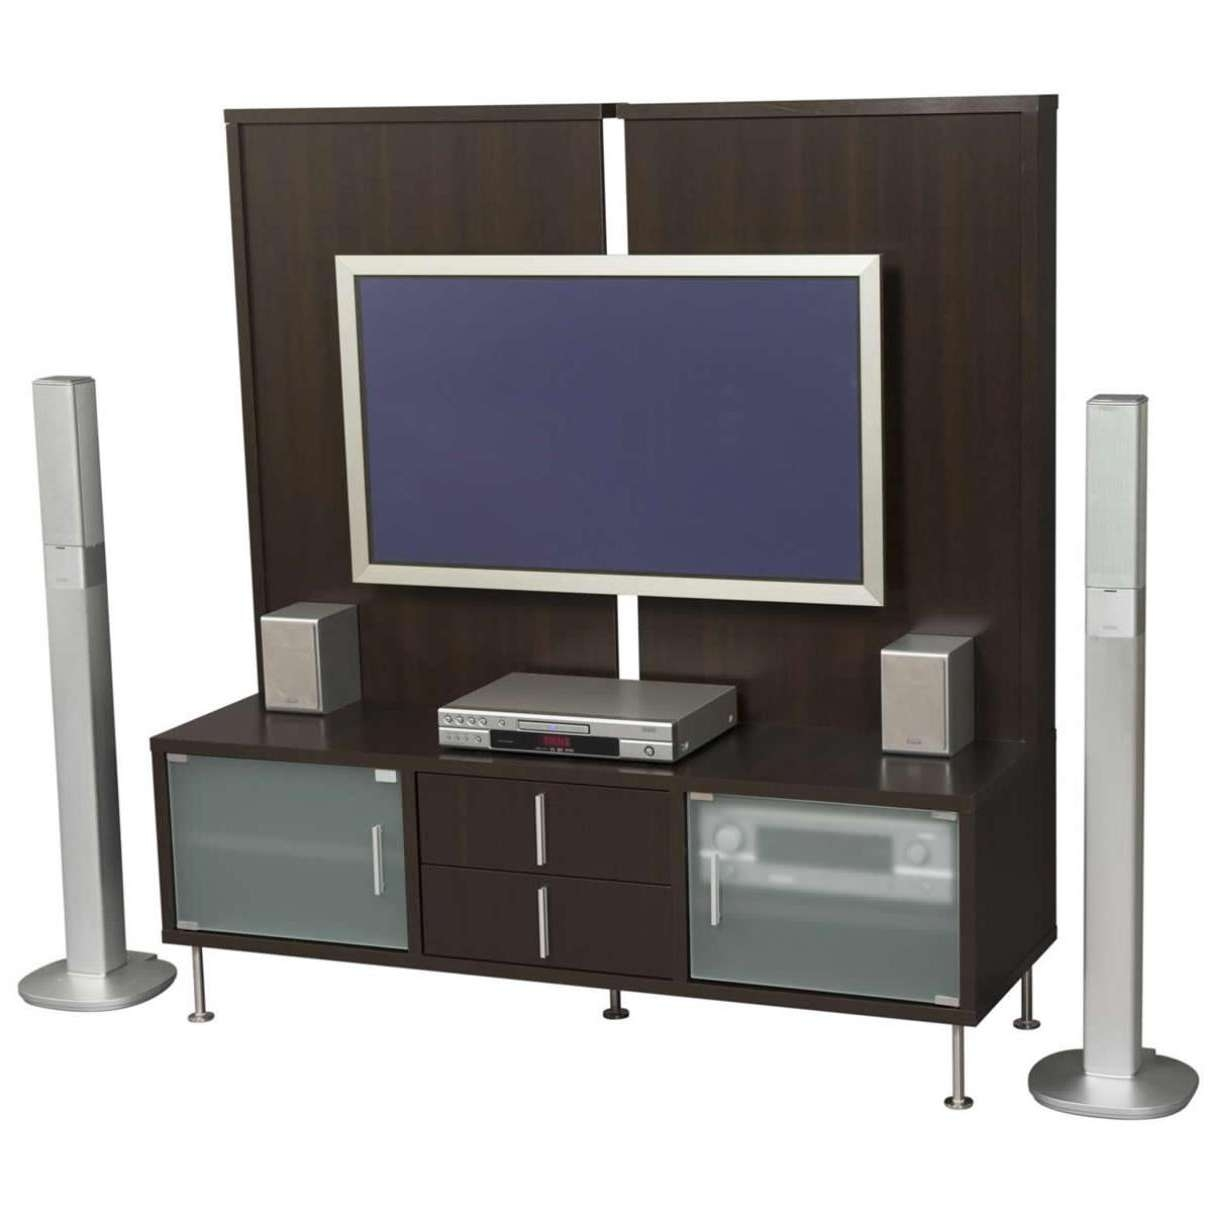 Tv Stand : 44 Marvelous At Home Tv Stand Images Ideas Tv Stands Regarding Sleek Tv Stands (View 10 of 15)